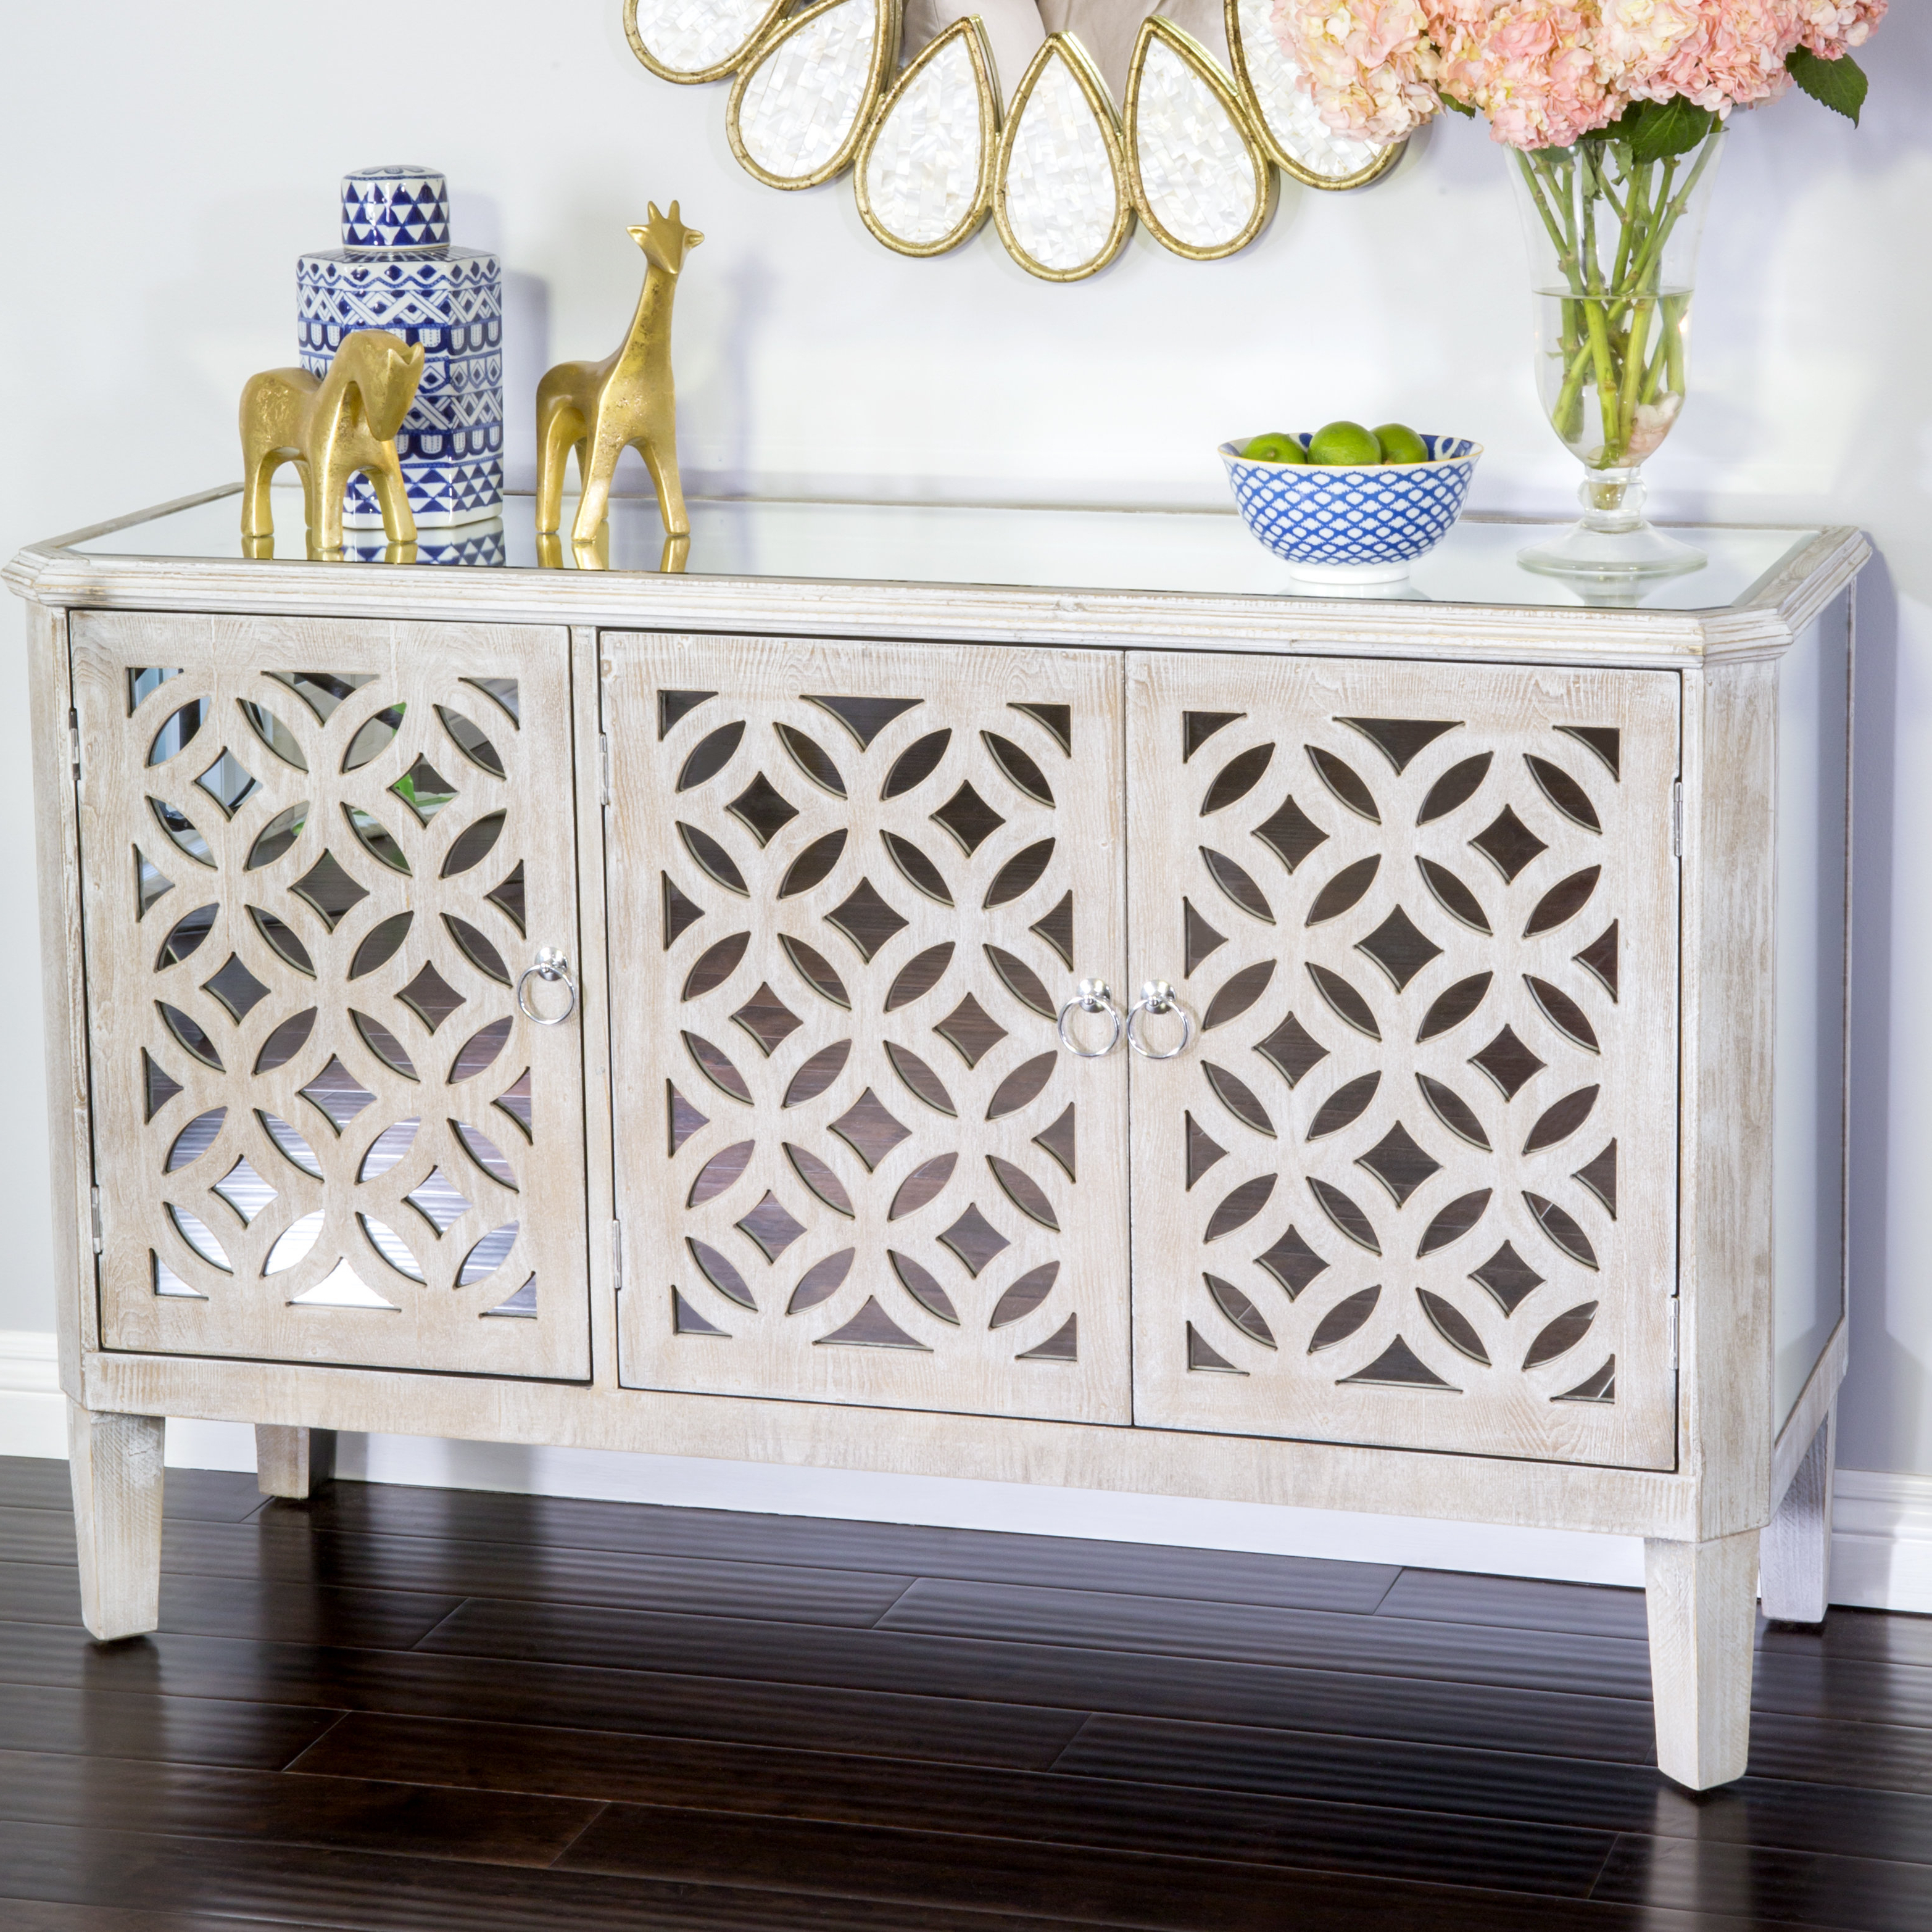 Deville Russelle Sideboards Pertaining To Recent Farmhouse & Rustic Distressed Finish Sideboards & Buffets (Gallery 10 of 20)